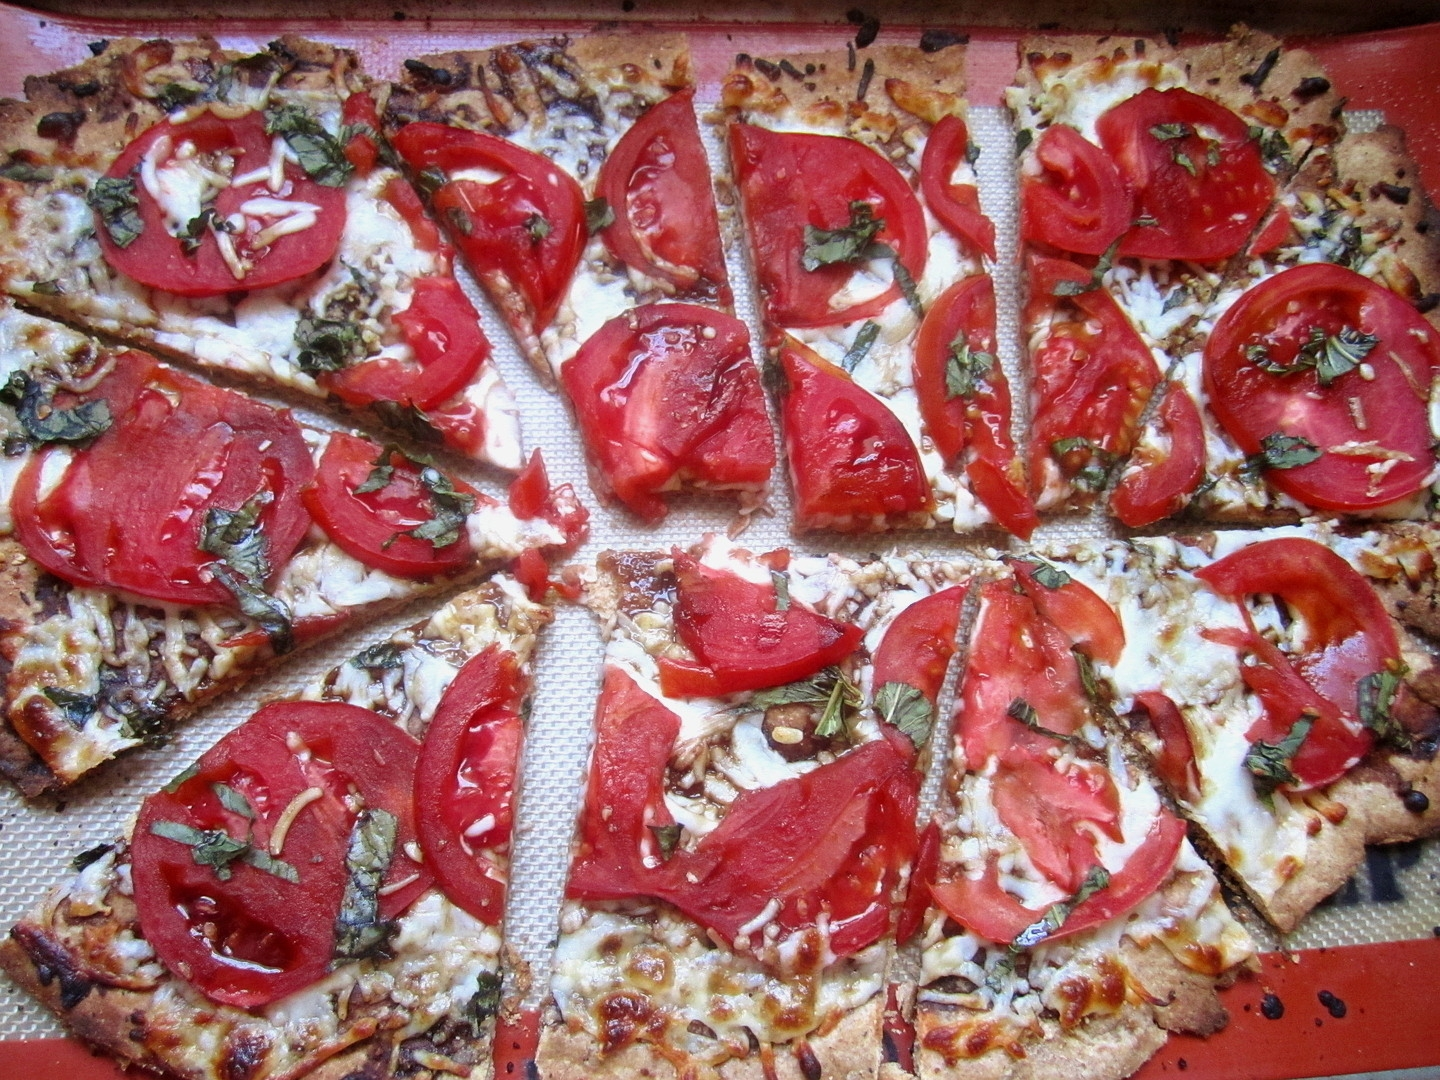 Whole Wheat Margherita Flatbread Pizza With Balsamic Reduction Sauce